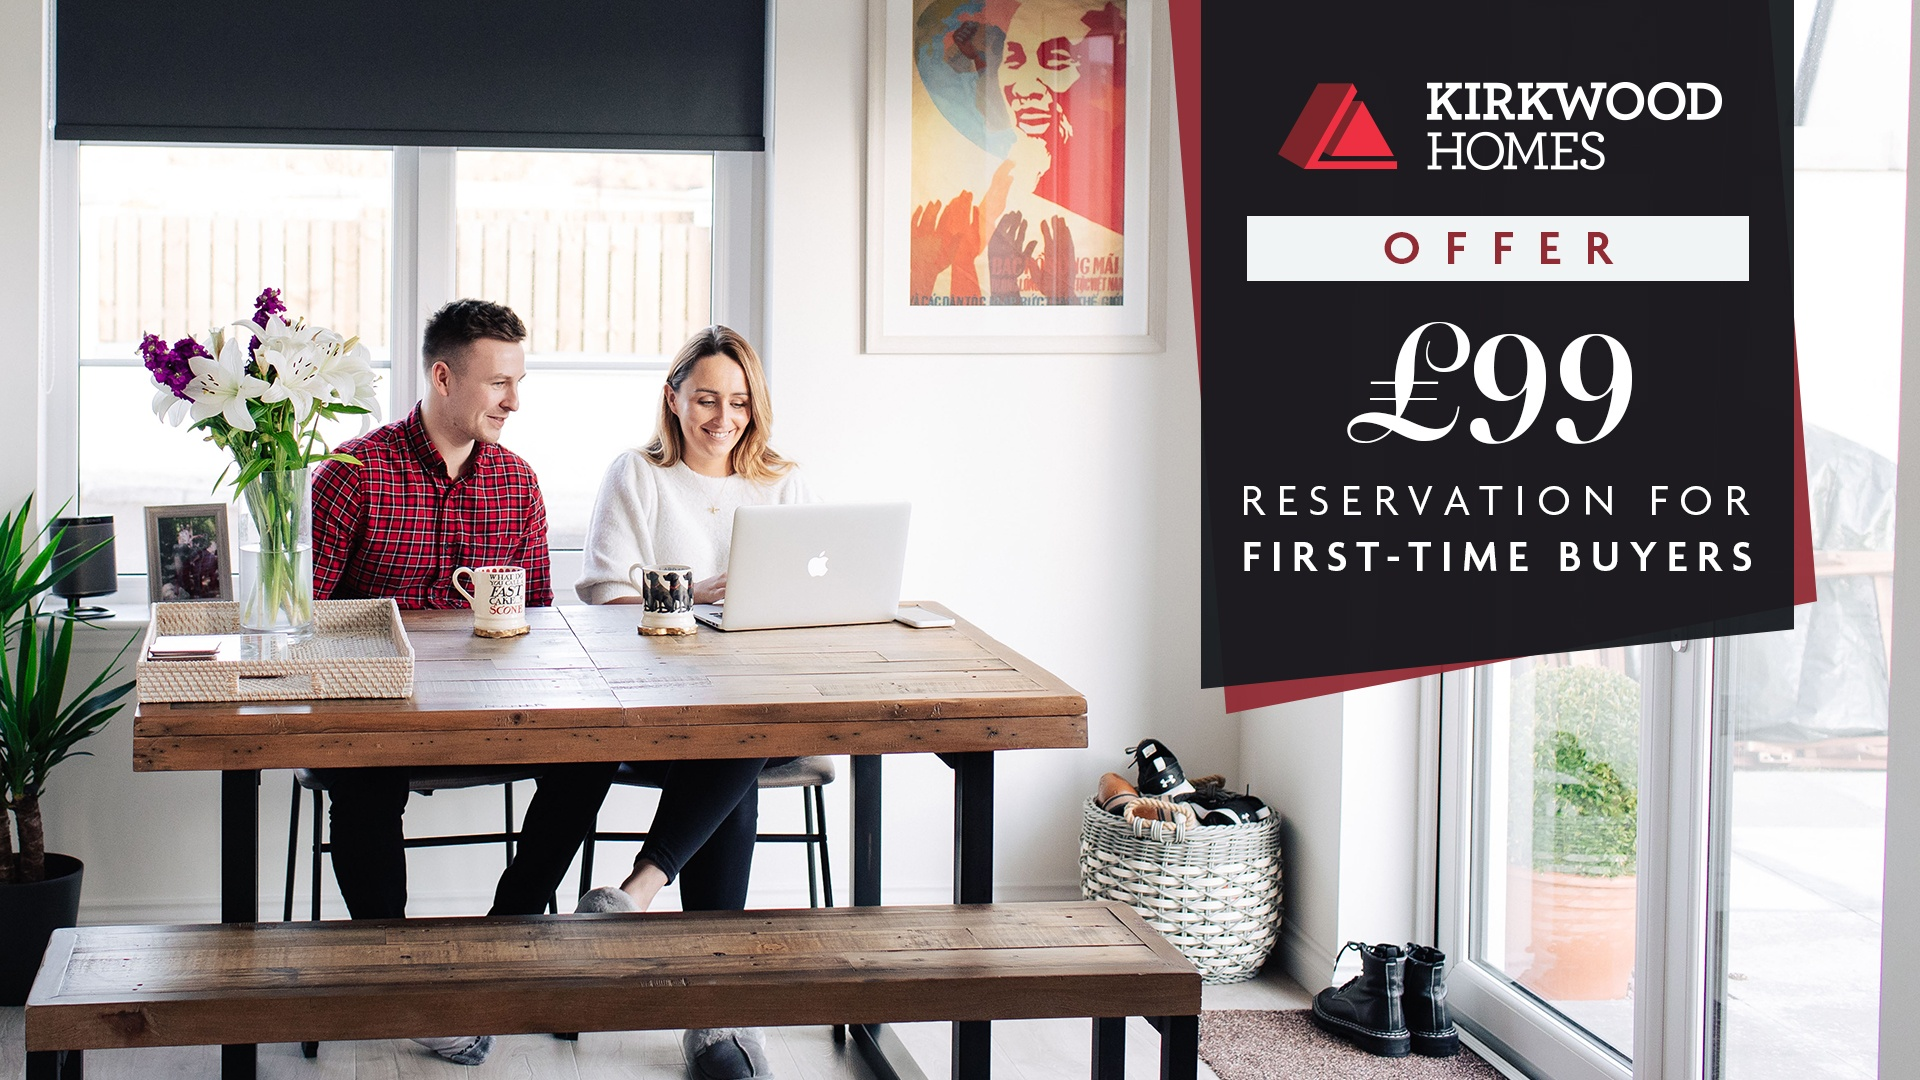 £99 reservation for first time buyers